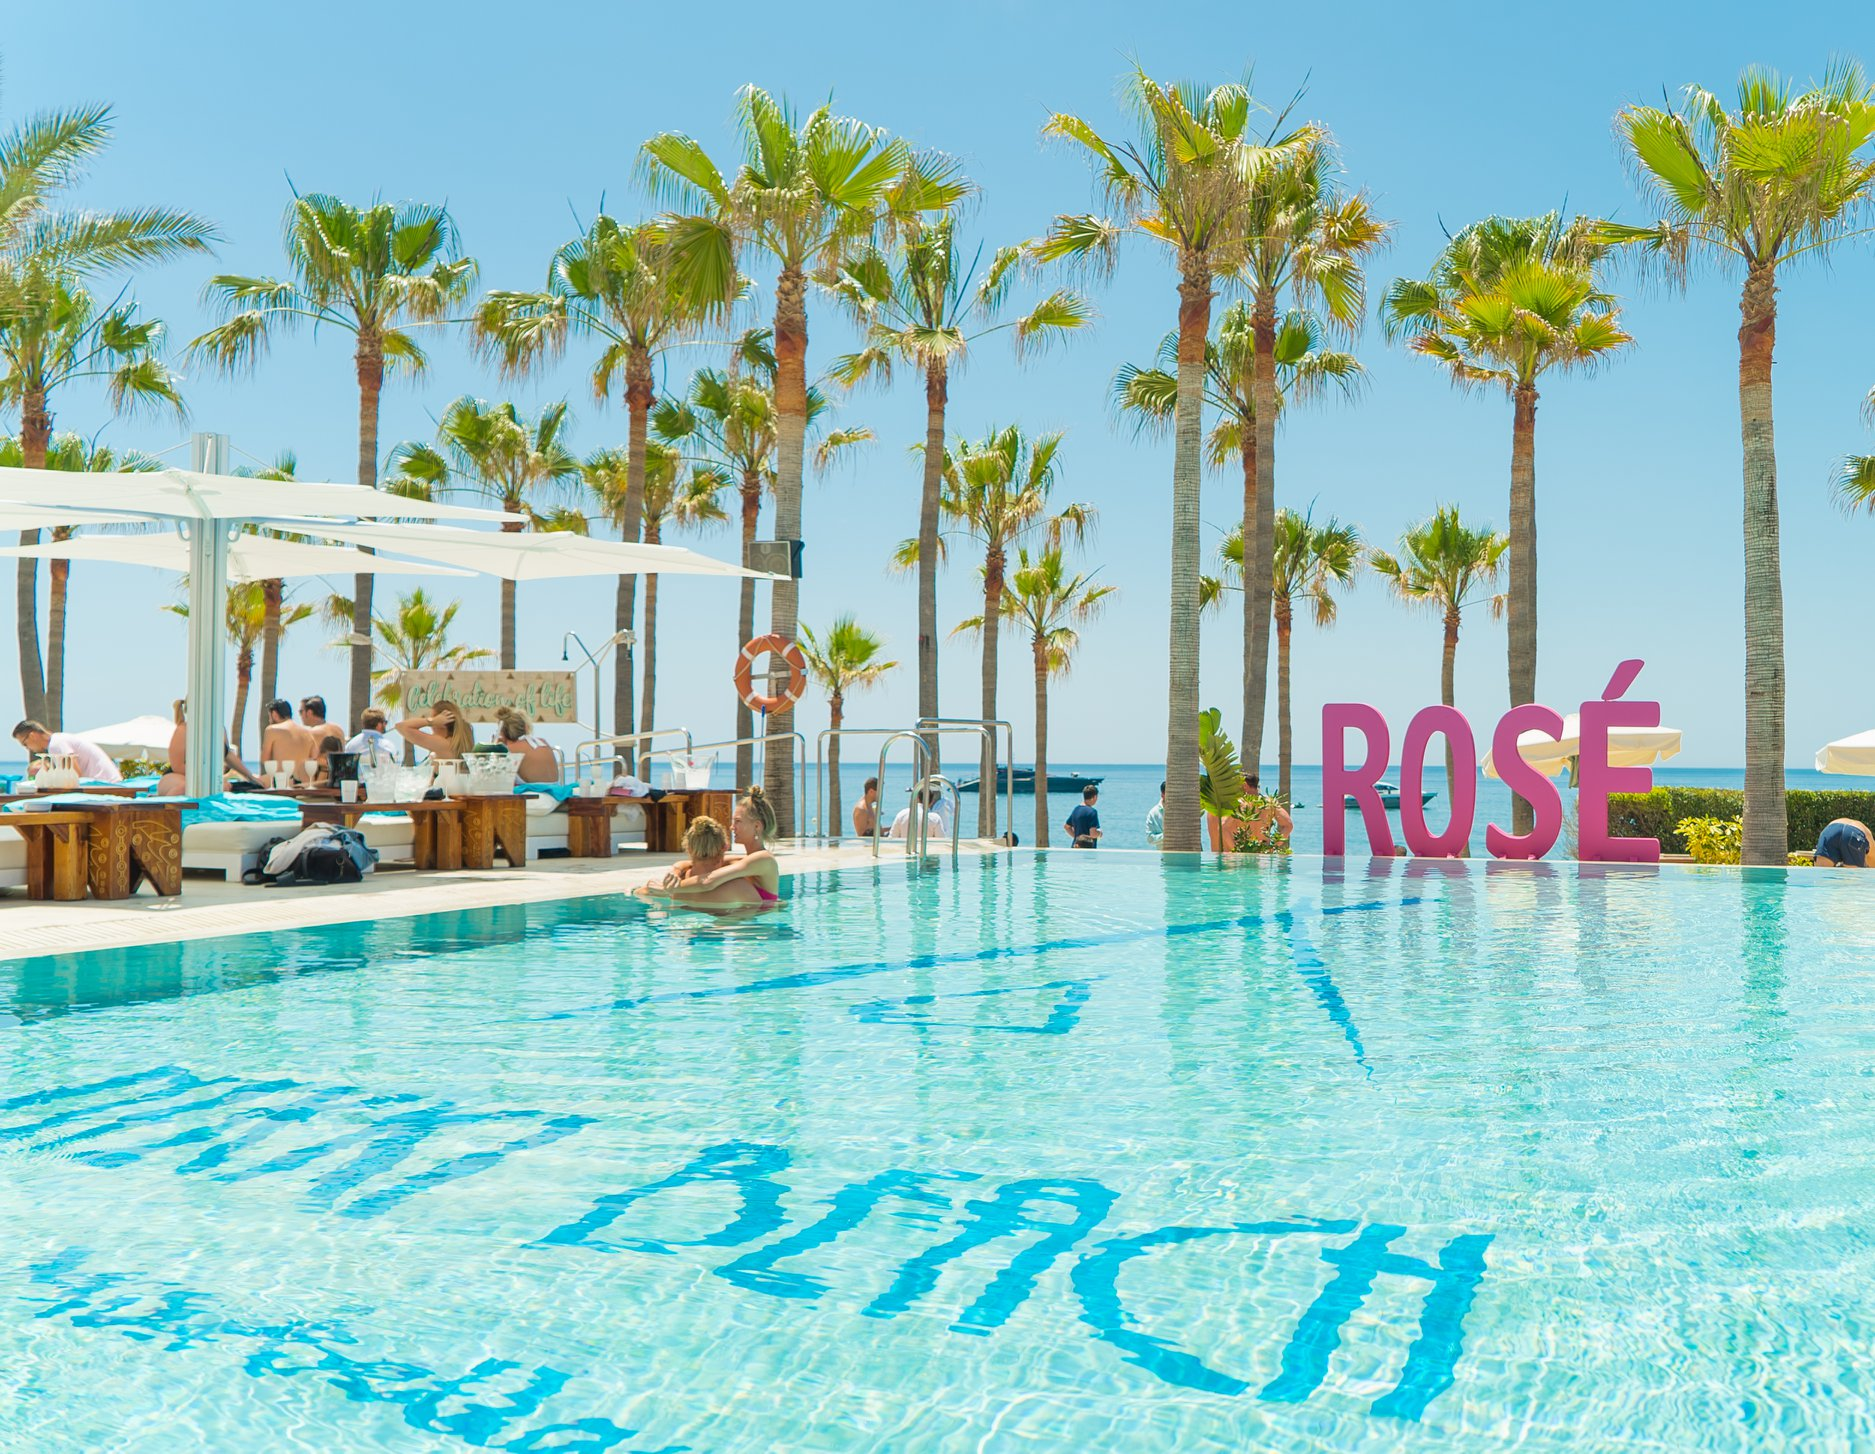 Best Beaches in Europe, Nikki Beach, best beaches in Spain, best beach clubs in Spain